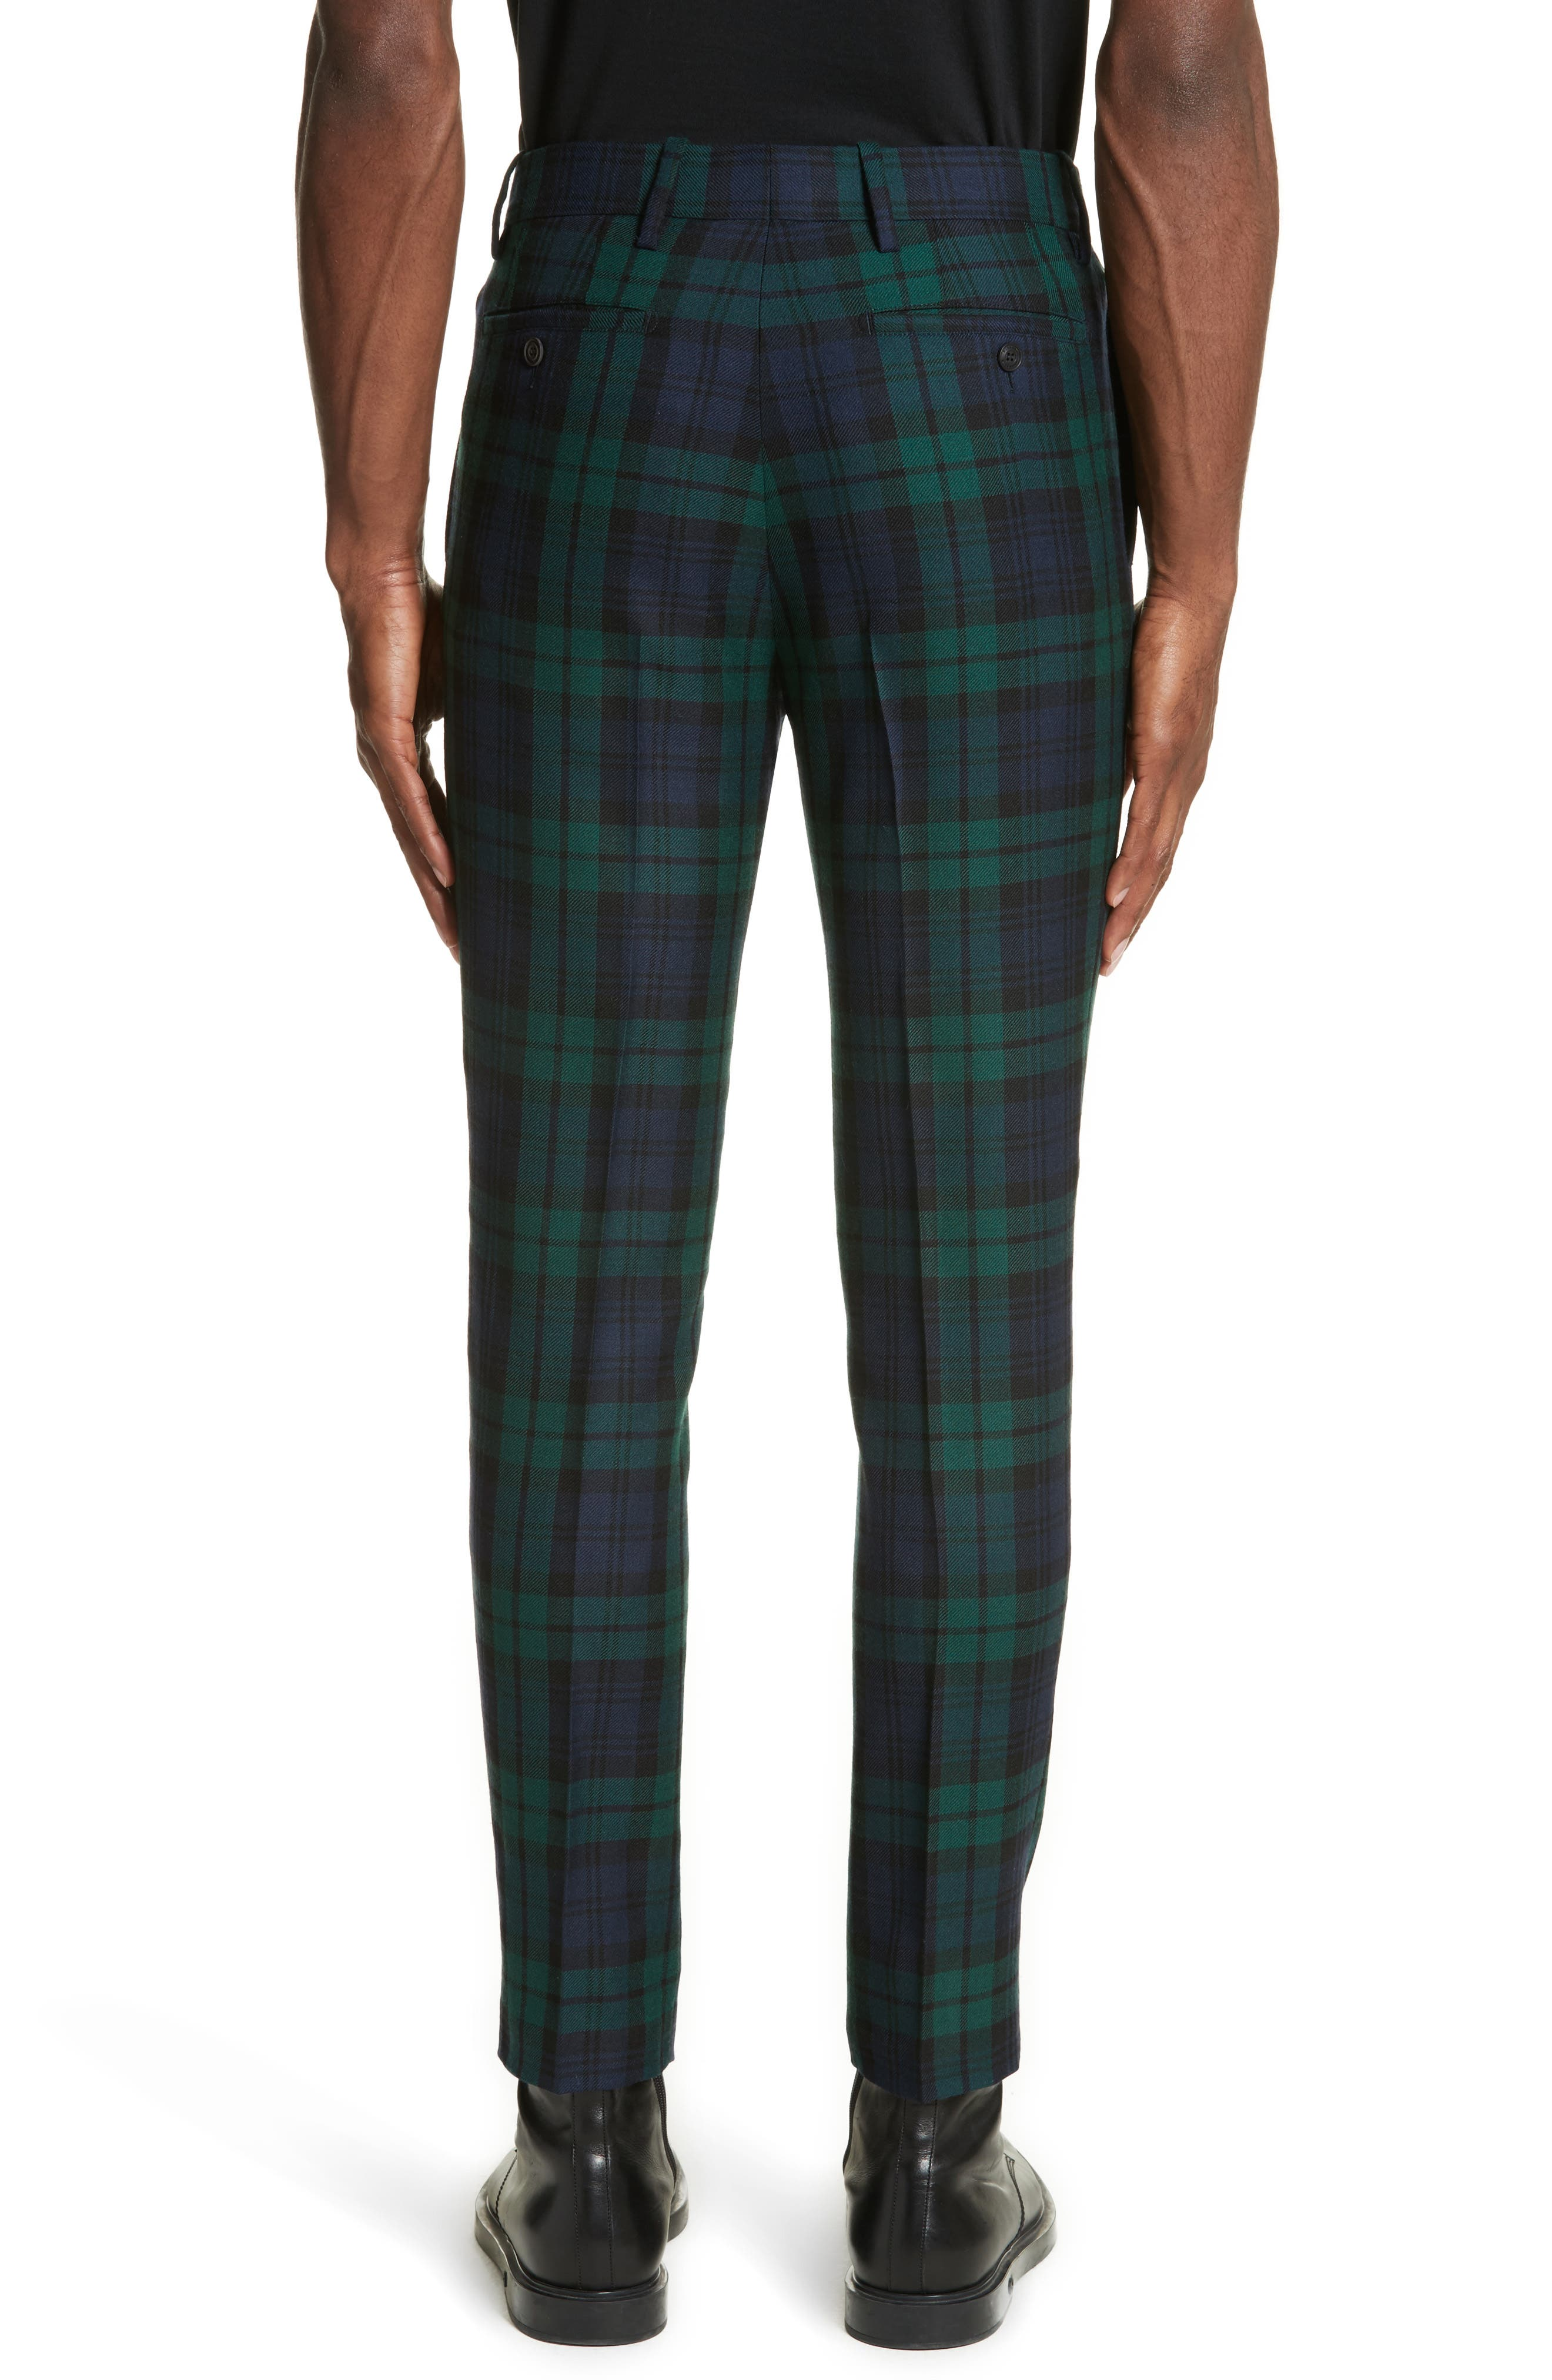 BURBERRY,                             Serpentine Check Wool Pants,                             Alternate thumbnail 2, color,                             410